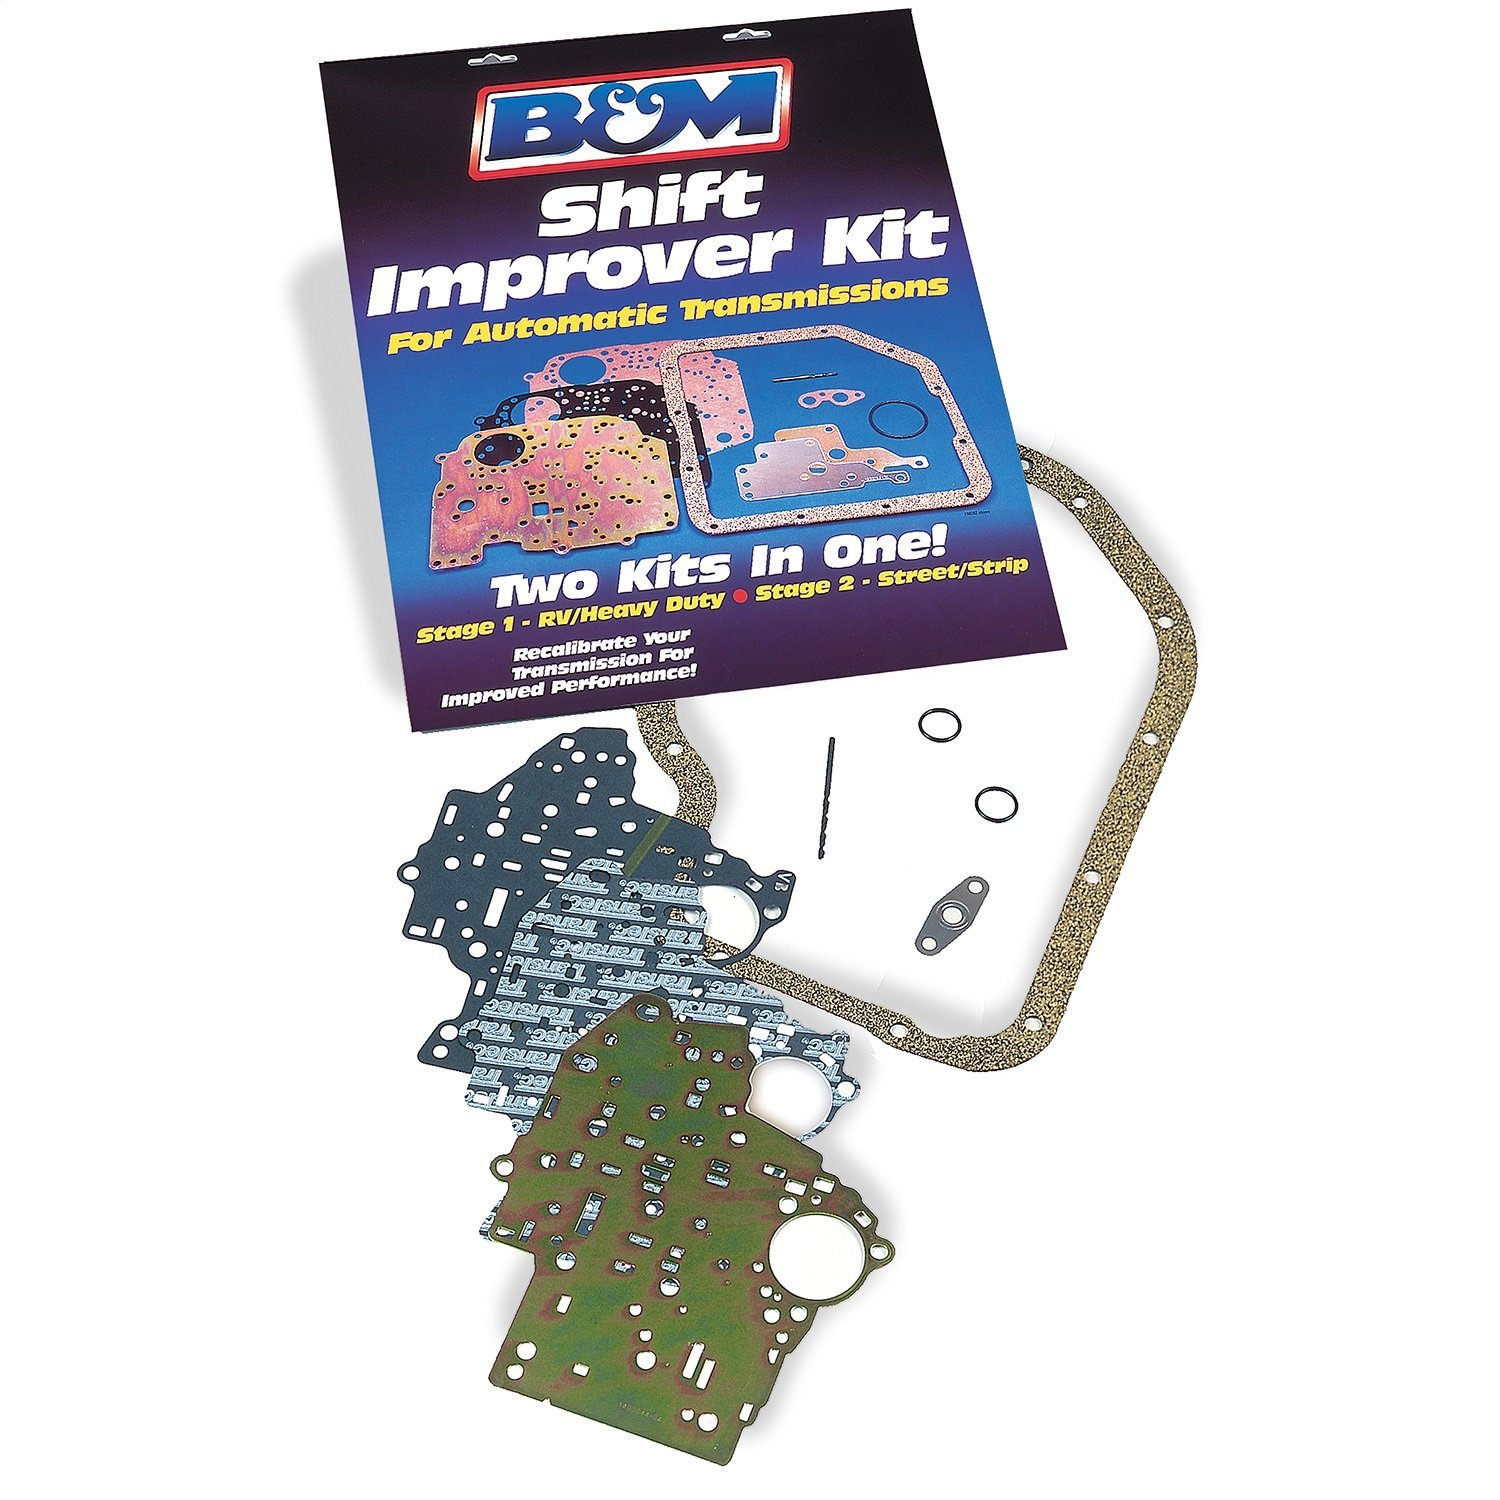 B&M 20260 Shift Improver Kit for Automatic Transmissions by B&M